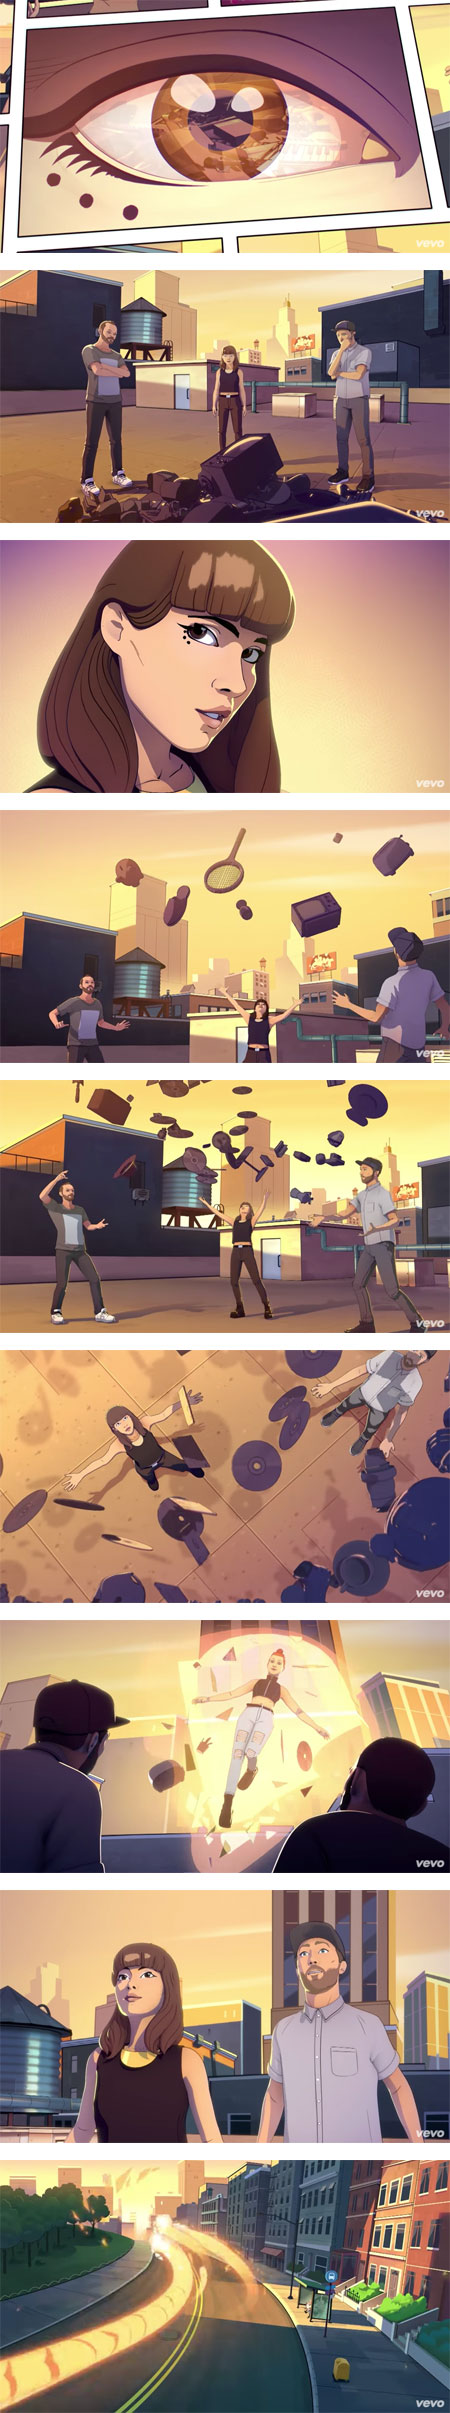 Bury It Chvrches and Haley Williams, animated by Mighty Nice, Jamie McKelvie